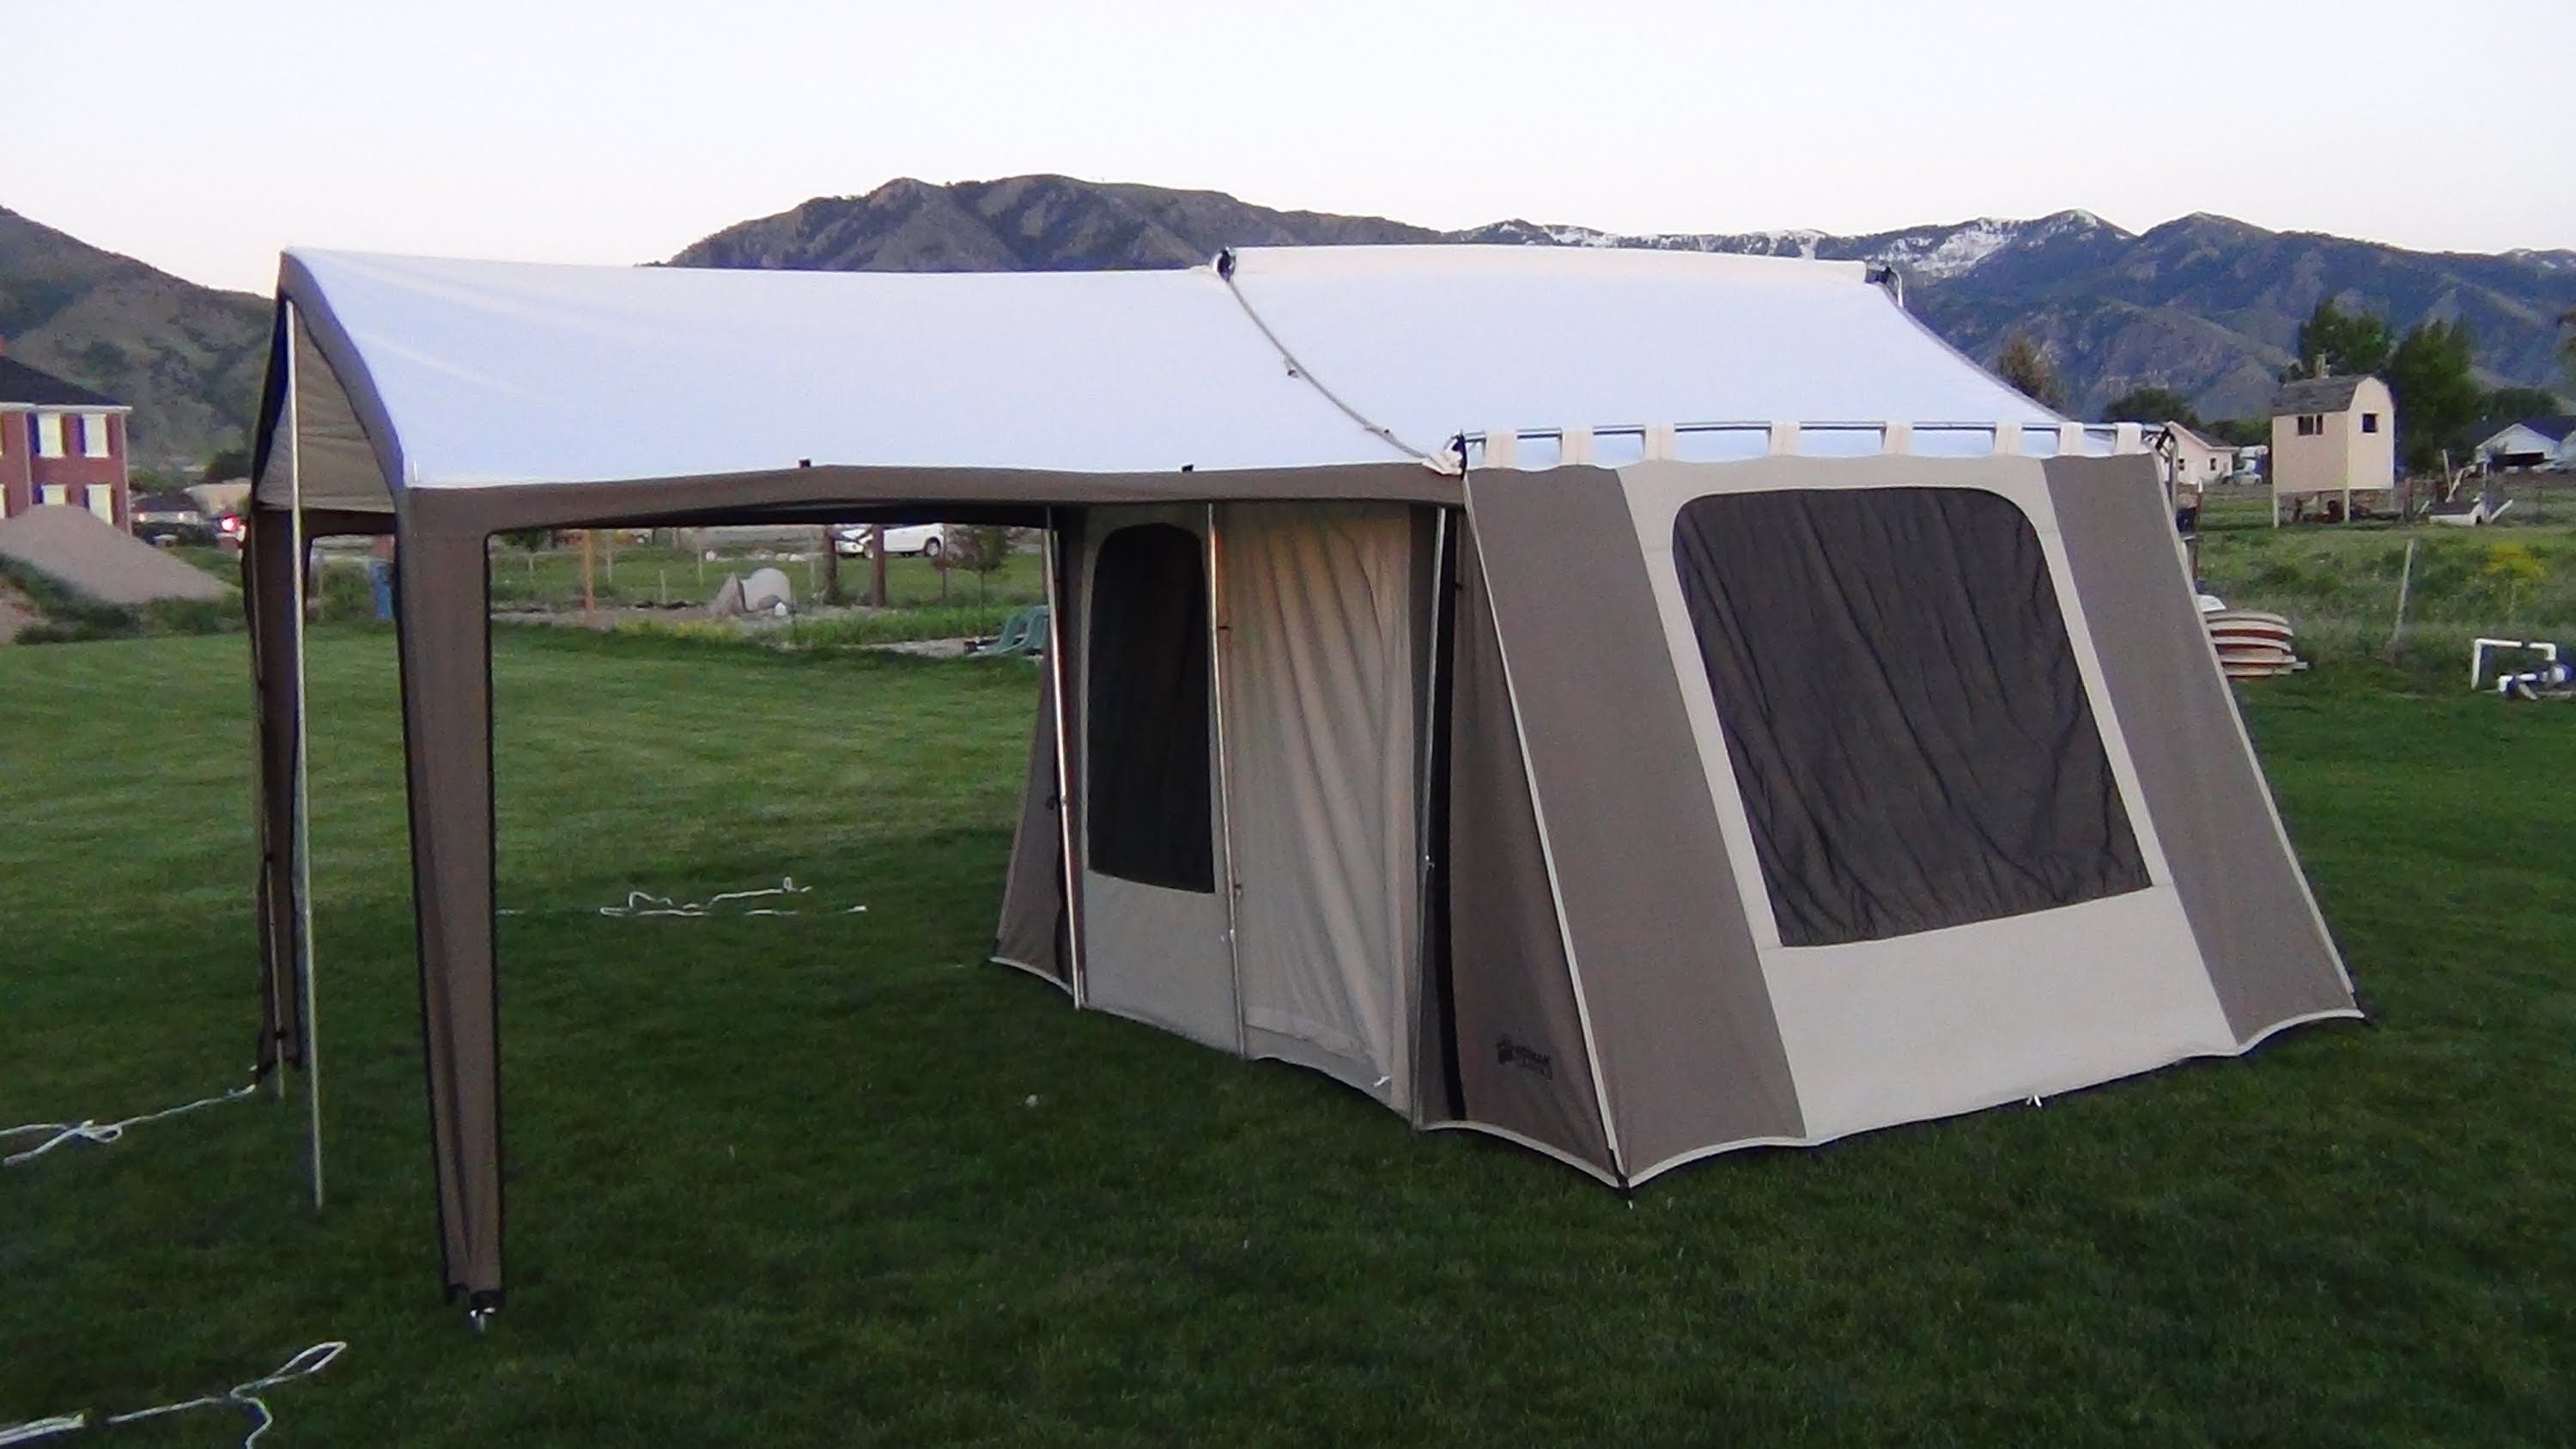 Kodiak Canvas Cabin Tent 6133 With Deluxe Awning Canopy